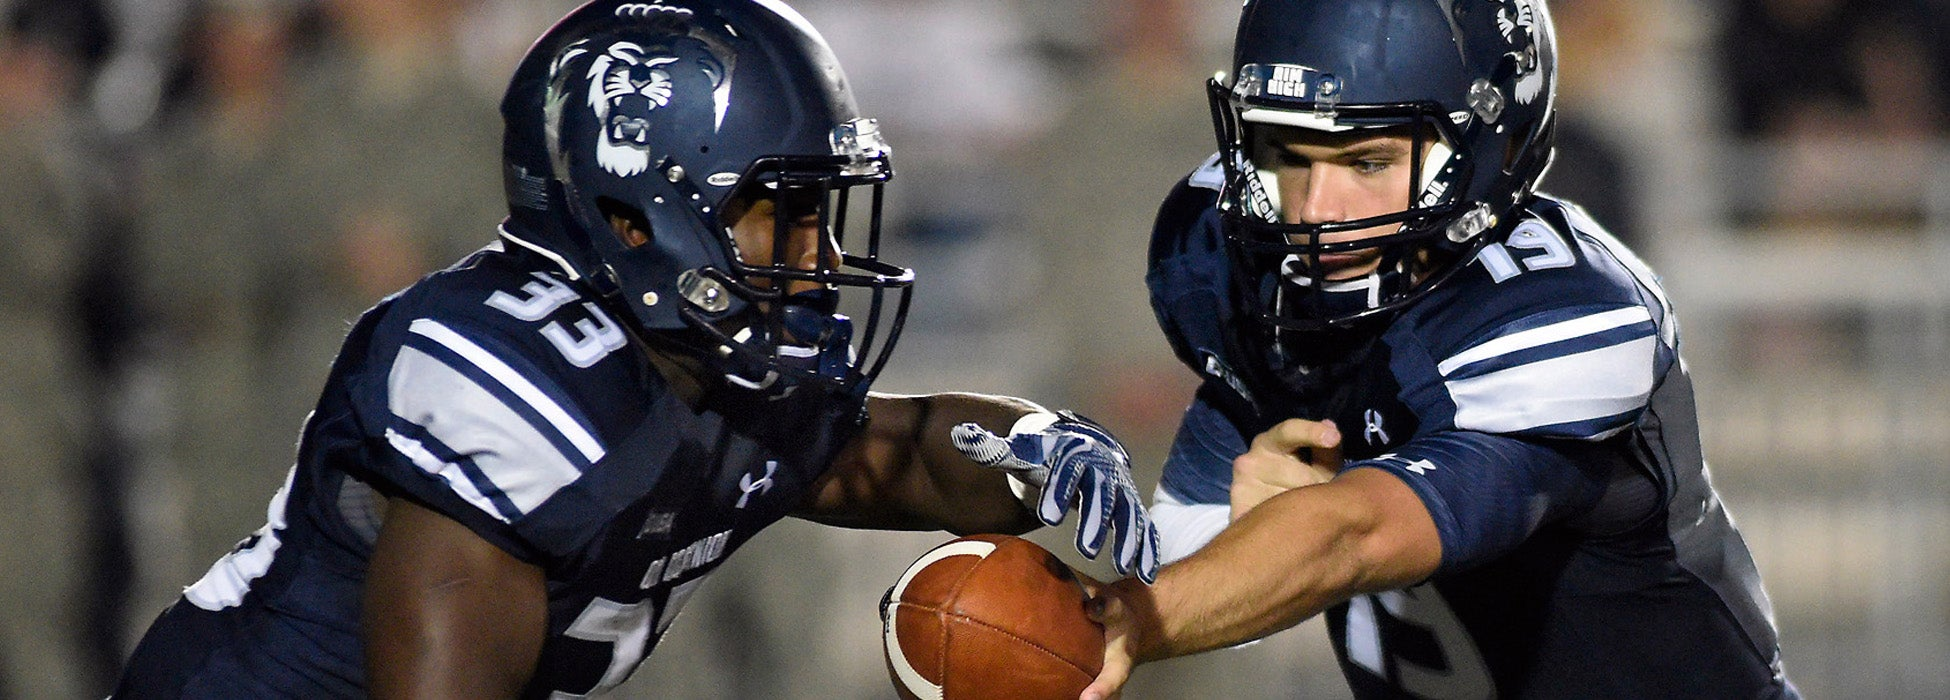 ODU FB Website Header 1950x700.jpg